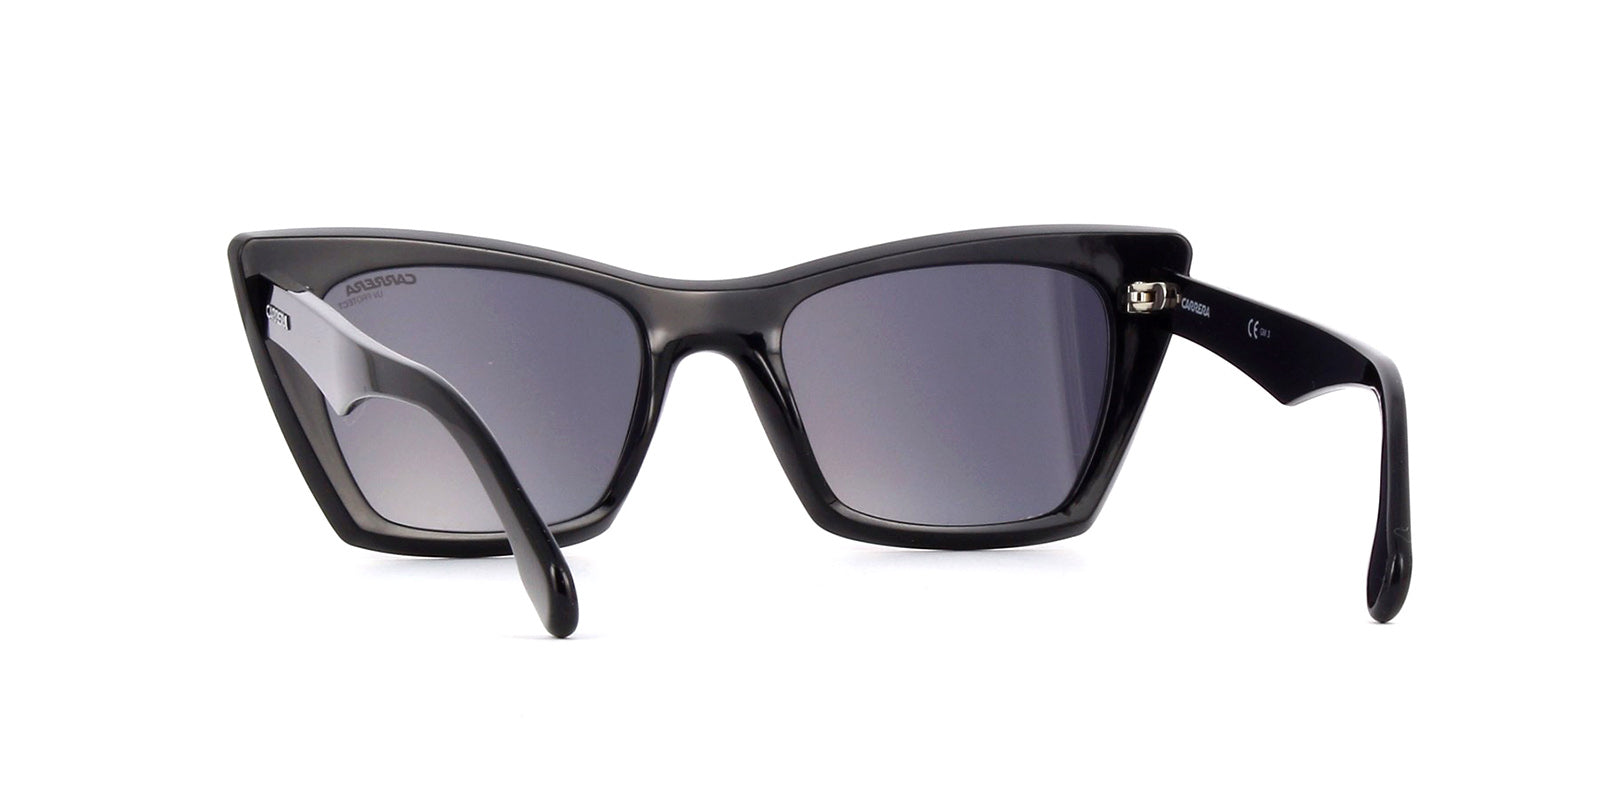 Carrera Sunglasses 5044/S 807IR